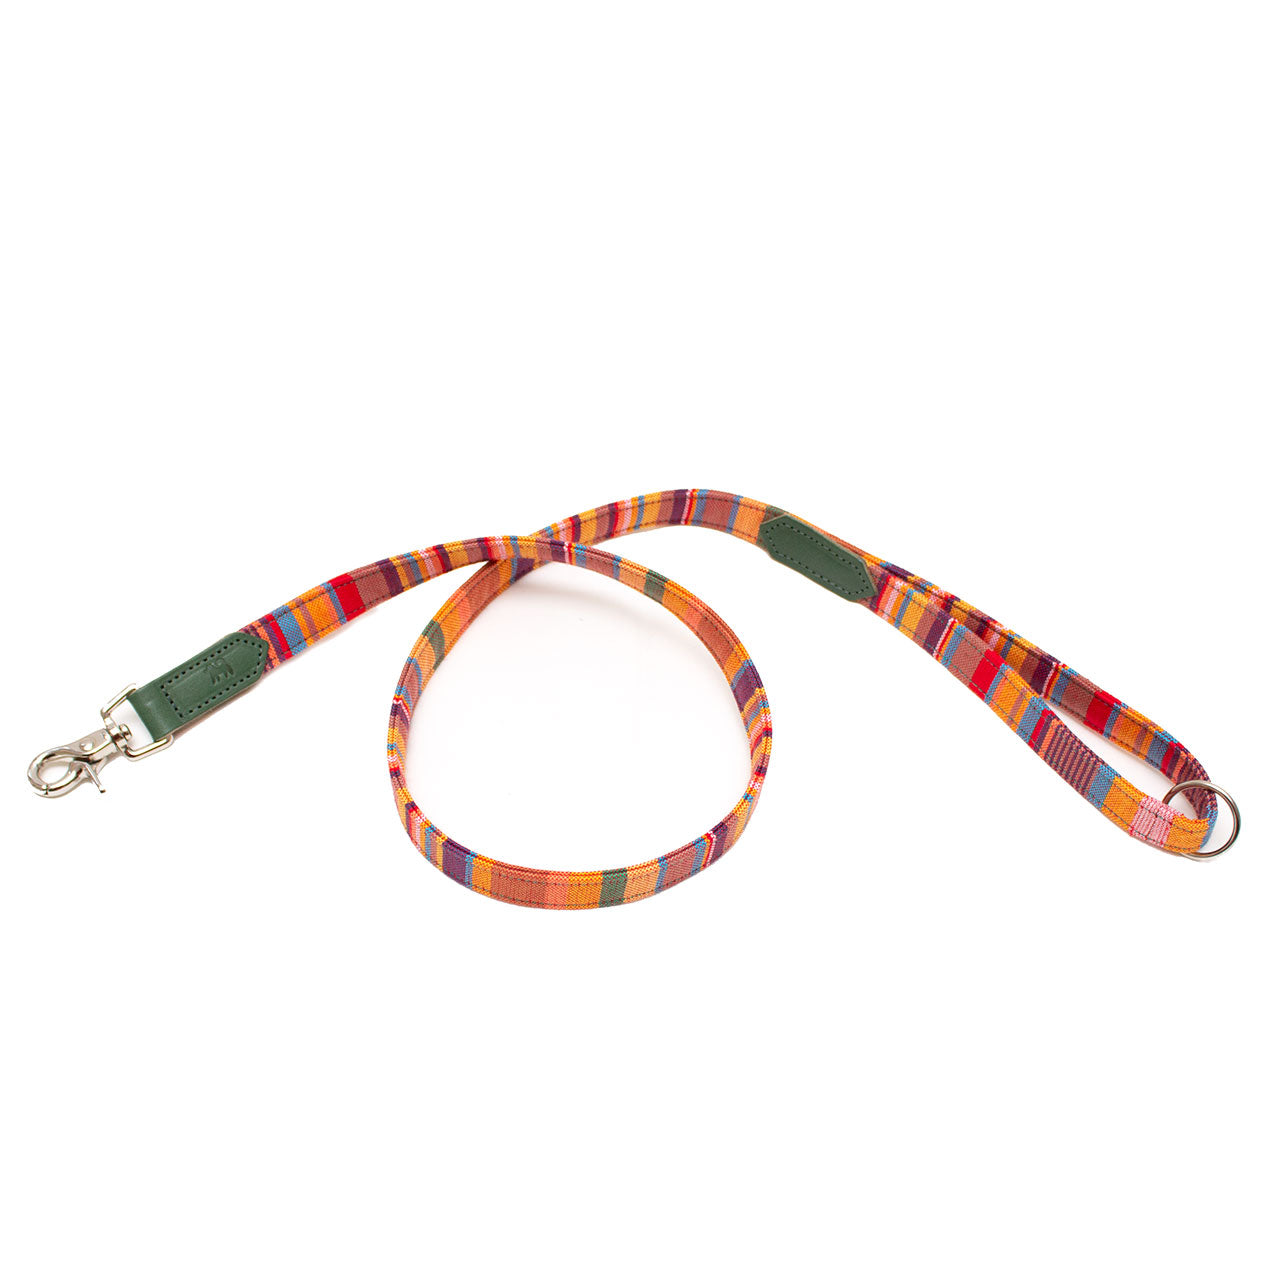 Hiro + Wolf Coastal Kikoy Dog Lead